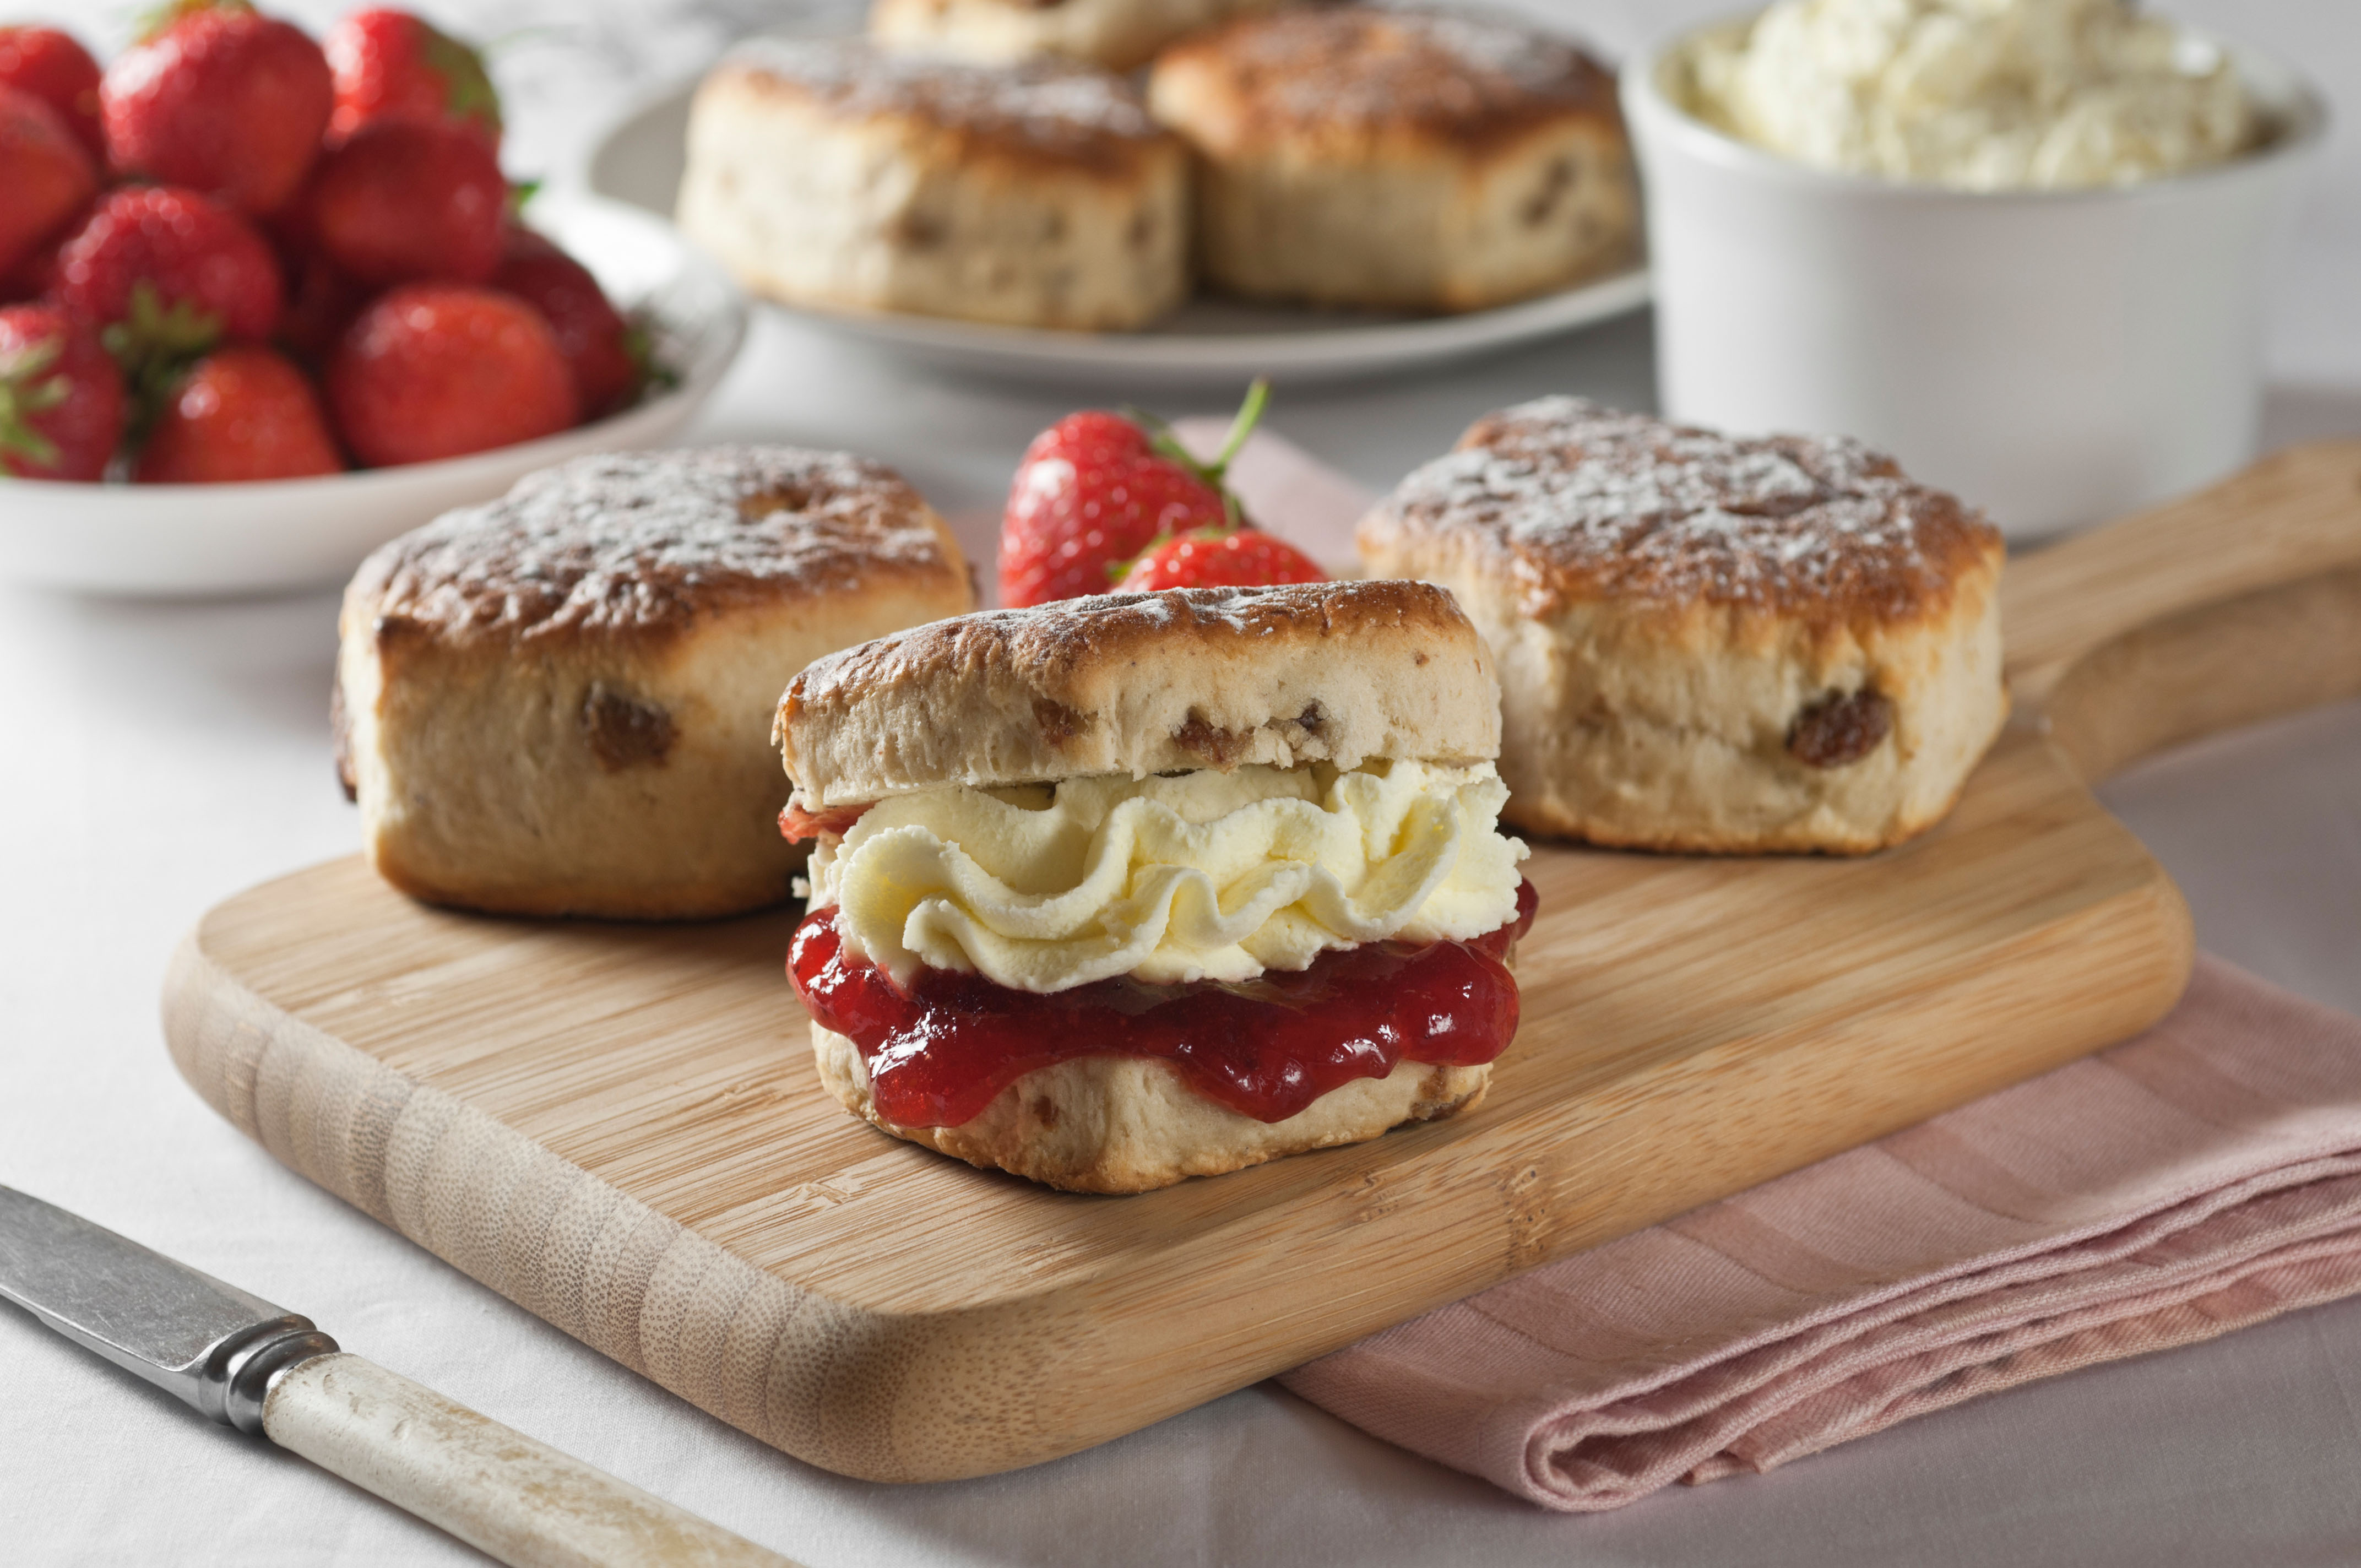 Traditional English scones with strawberry jam and cream